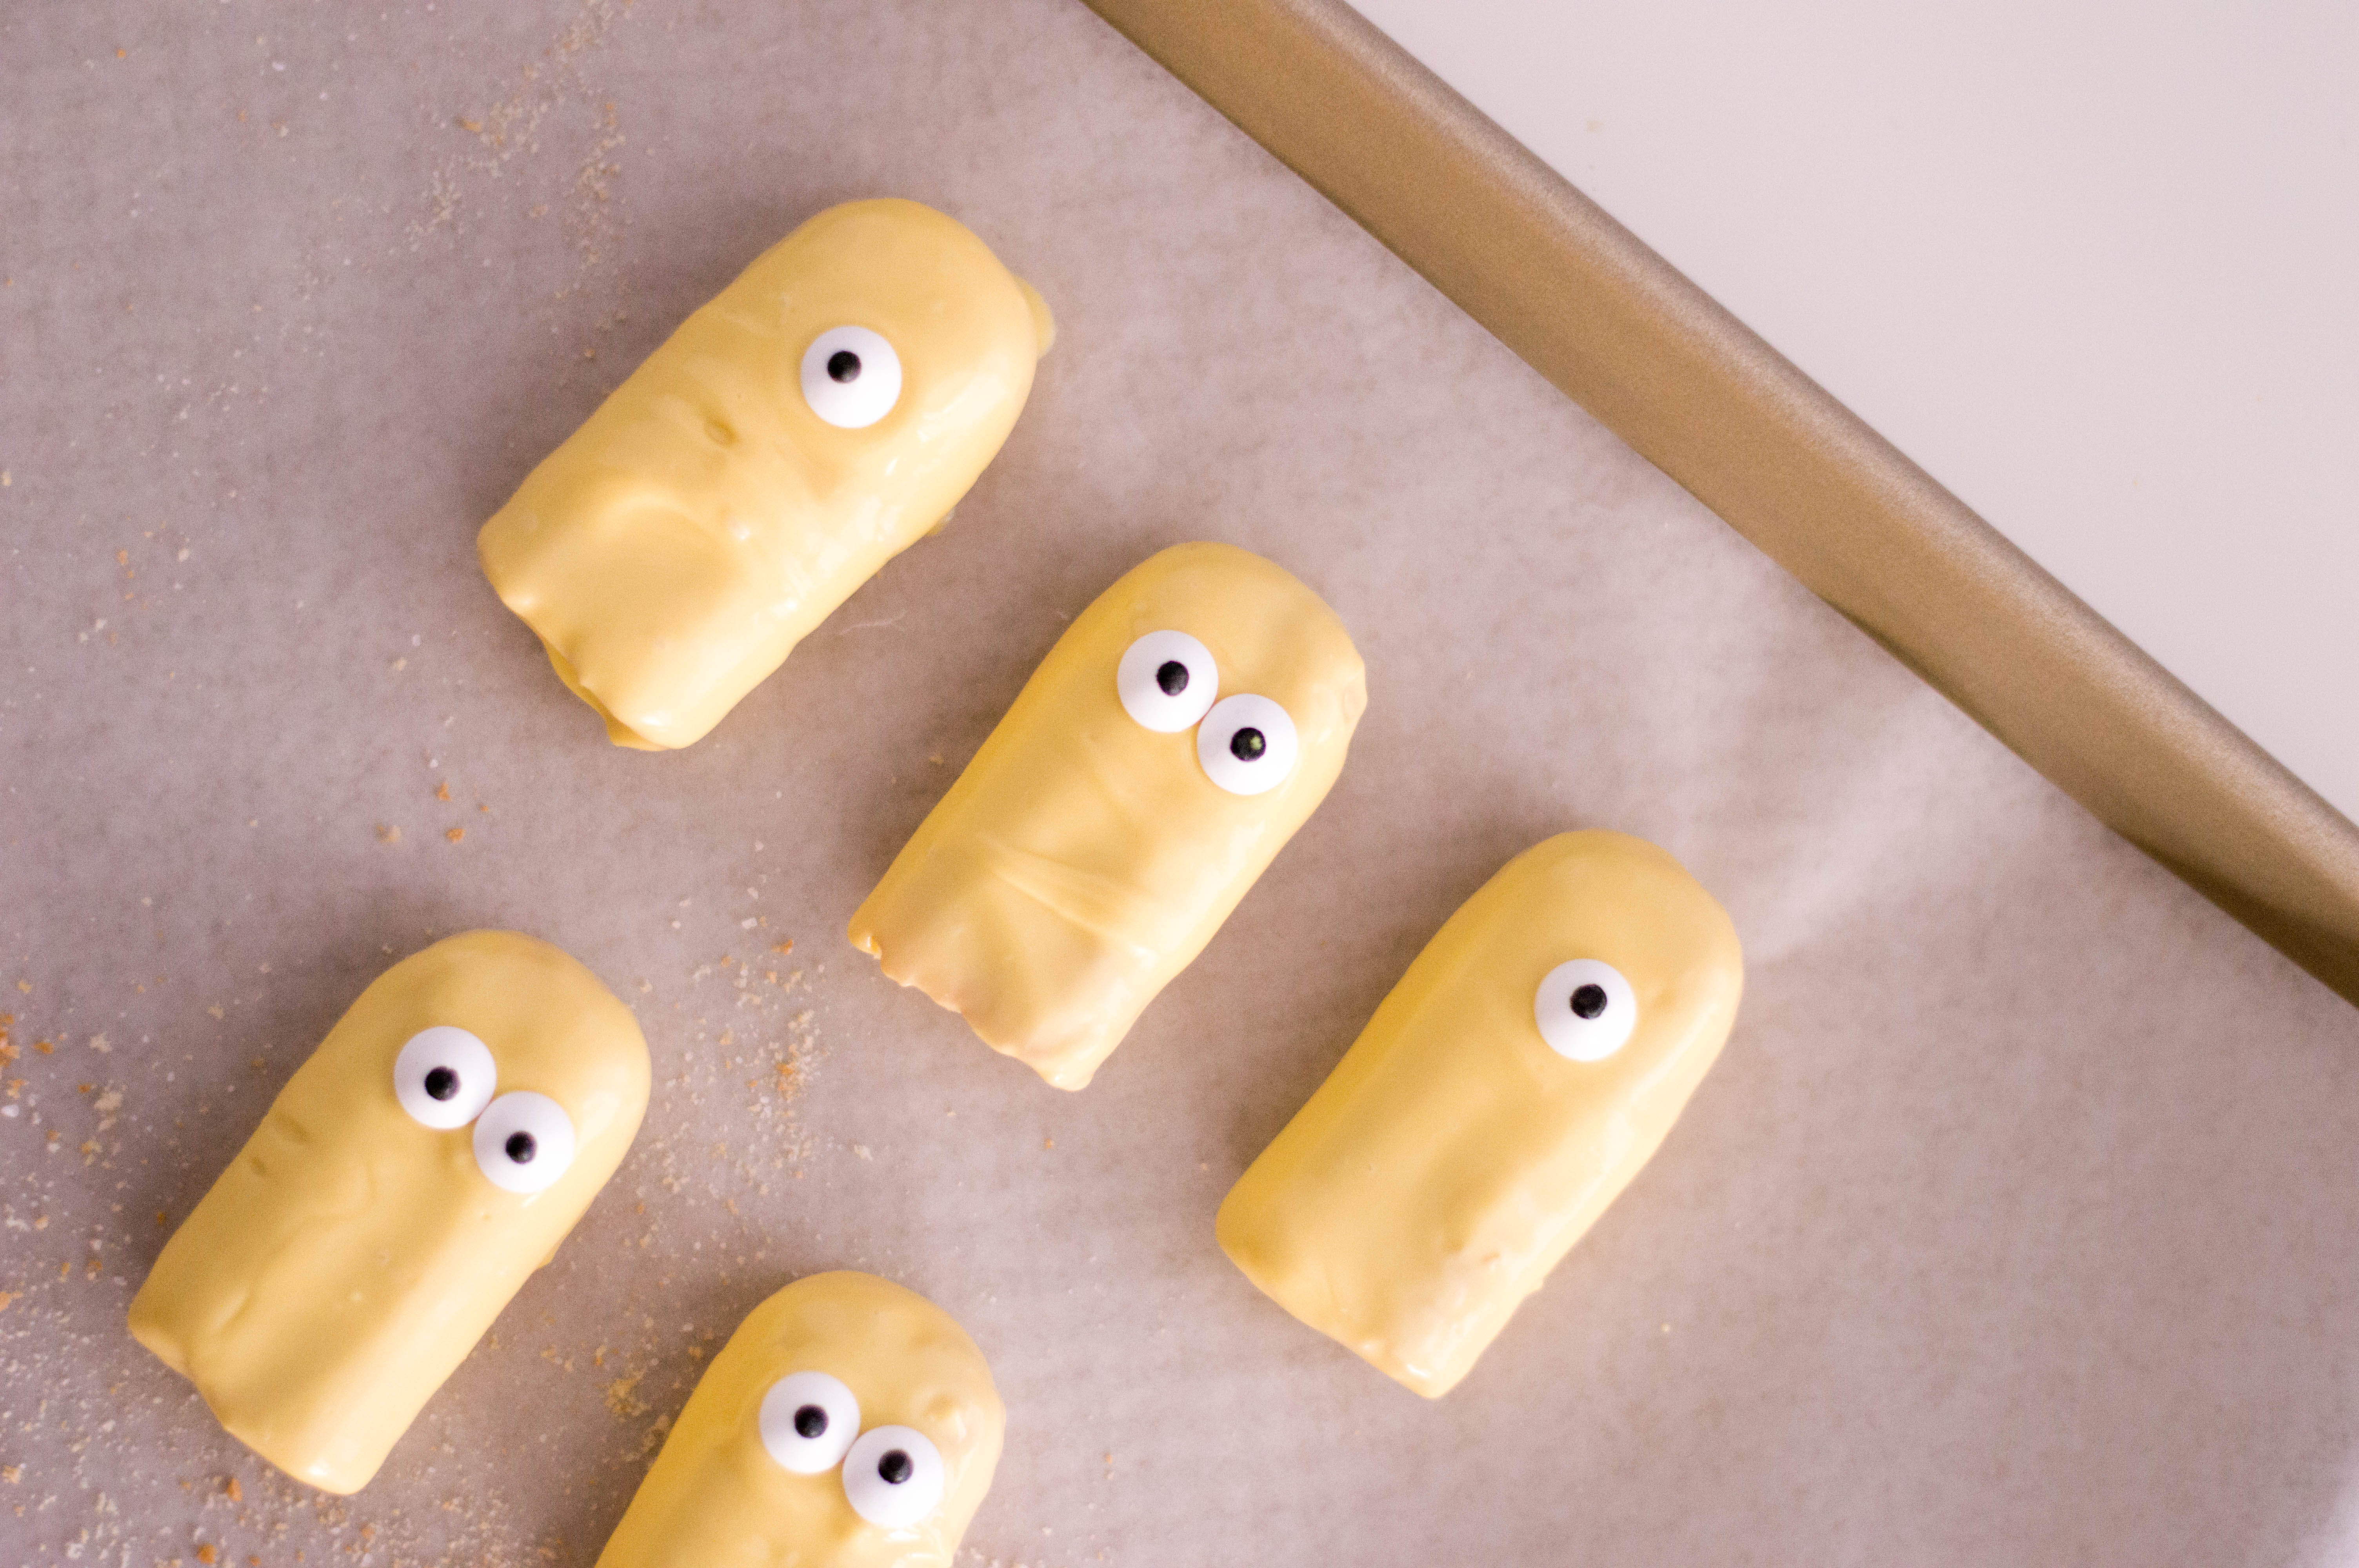 Making Minions out of Ladyfinger cookies